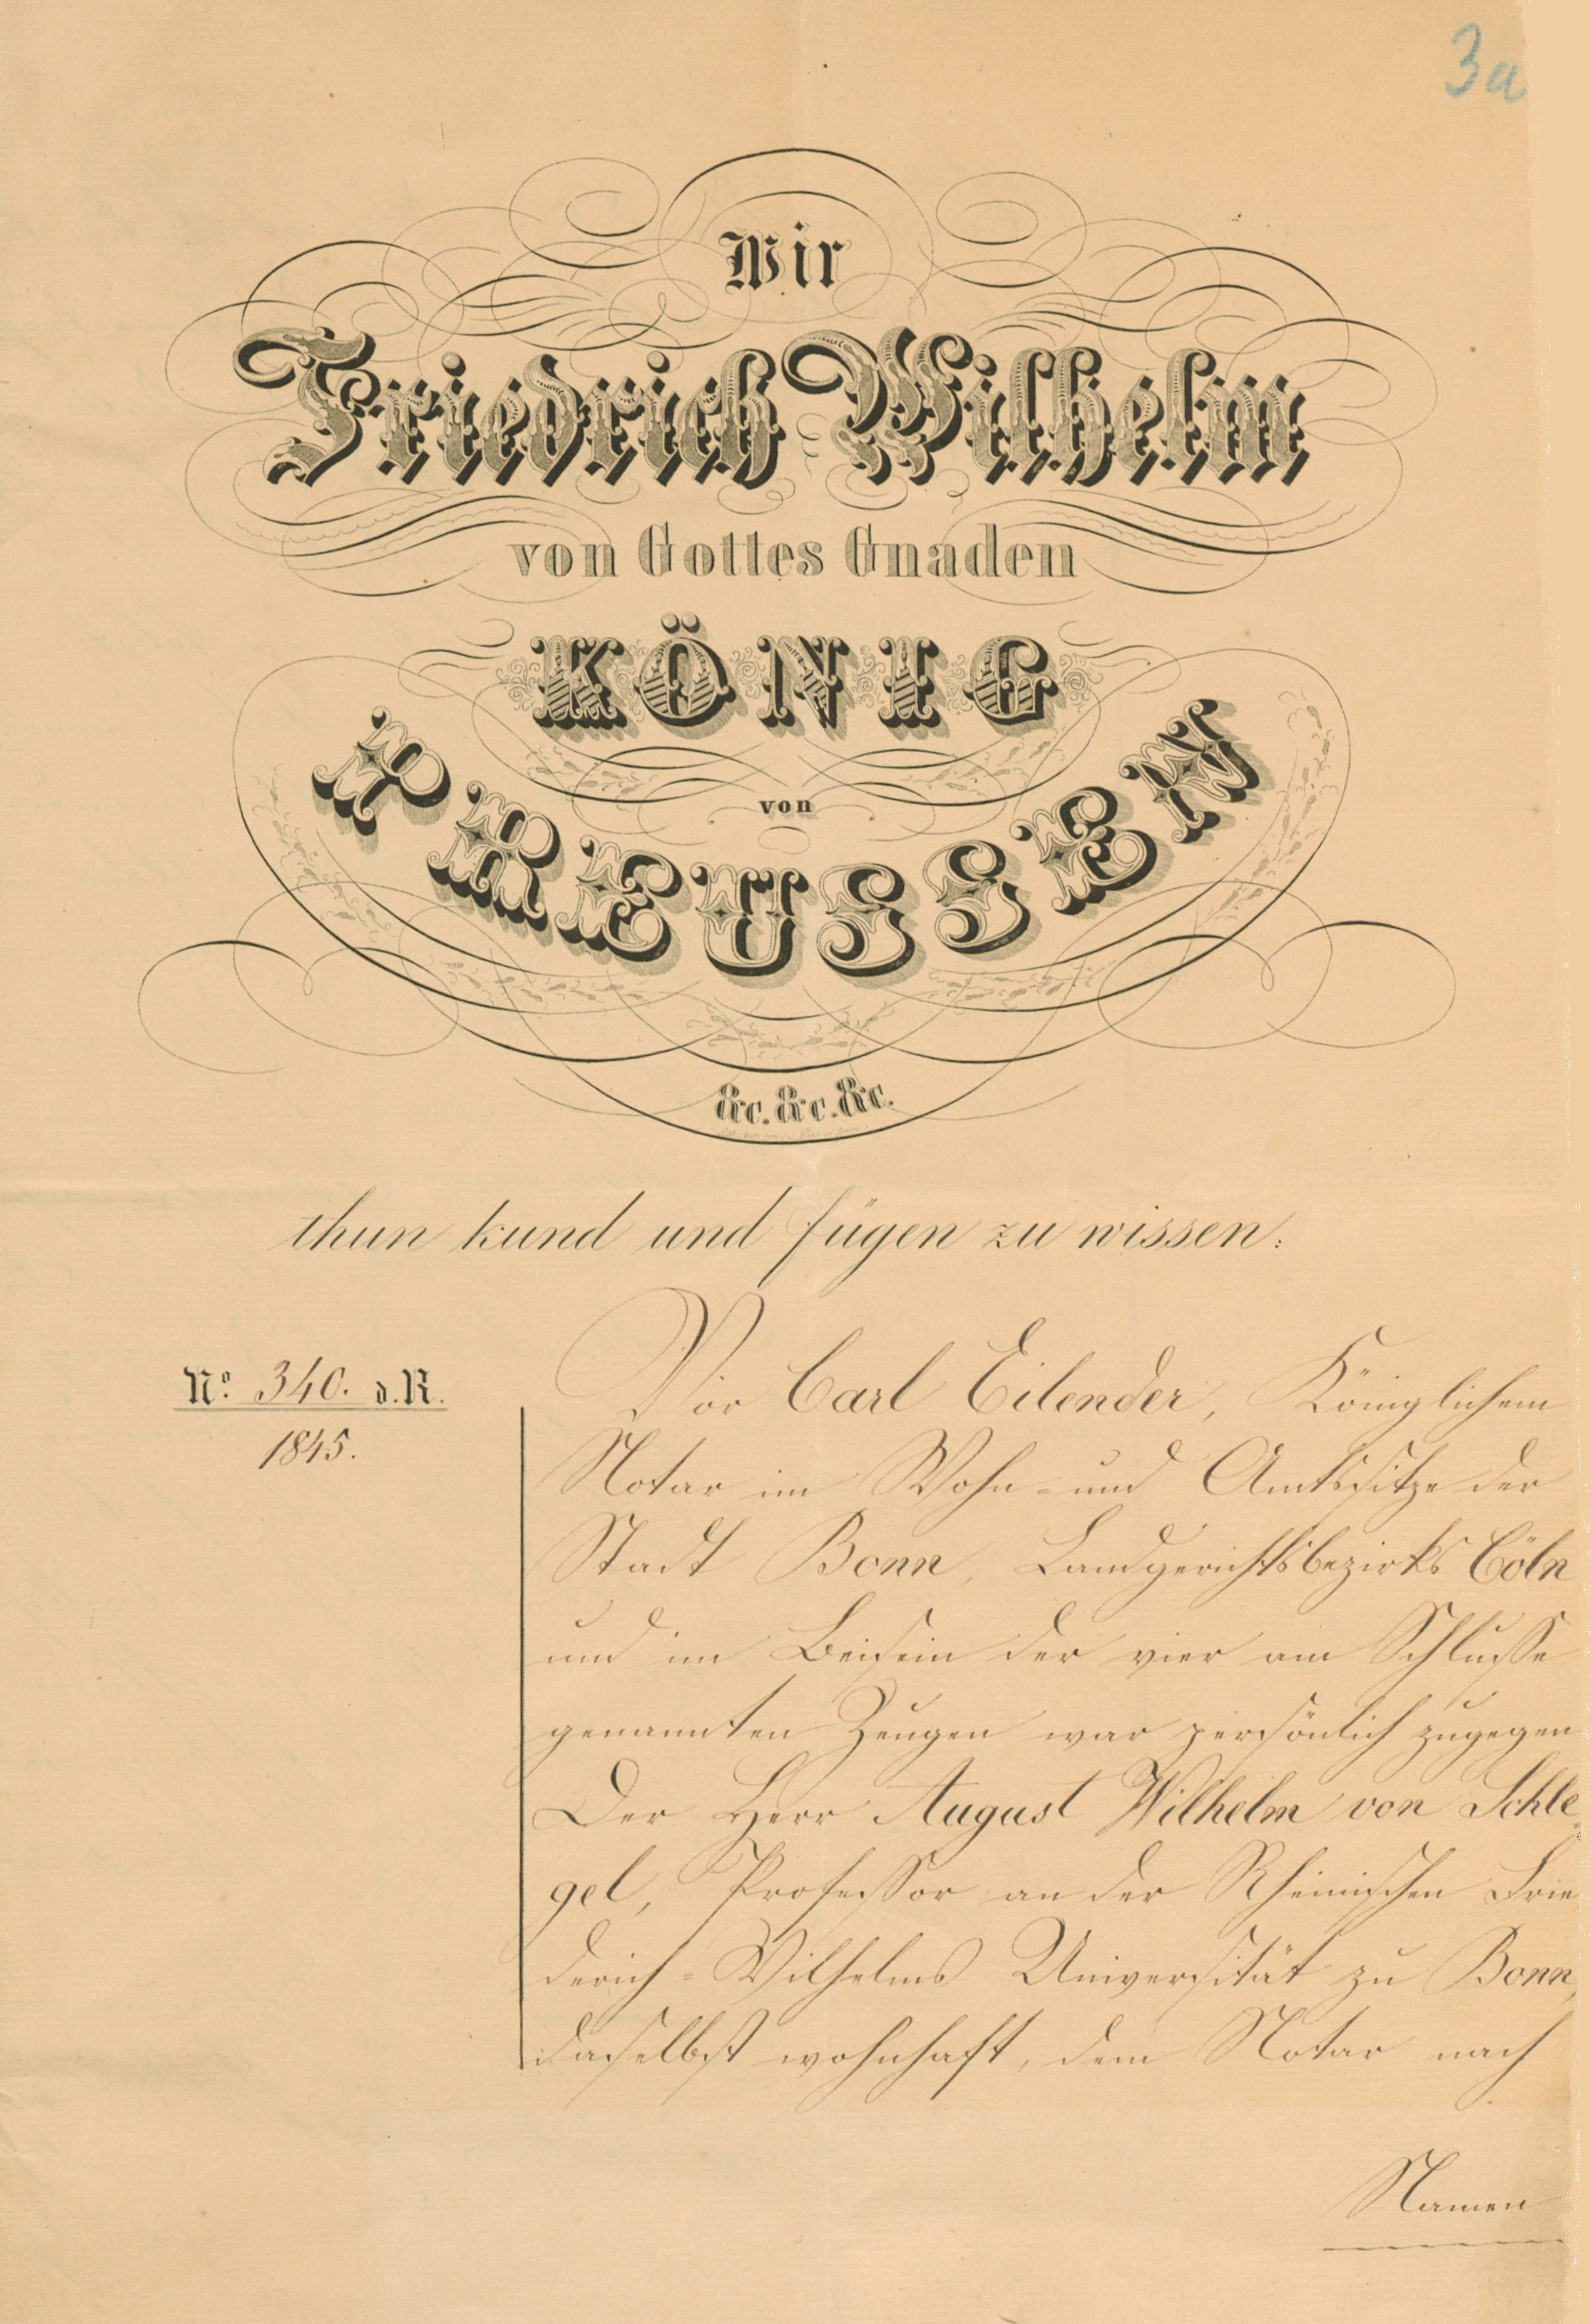 August Wilhelm von Schlegel's will (27th March 1845)